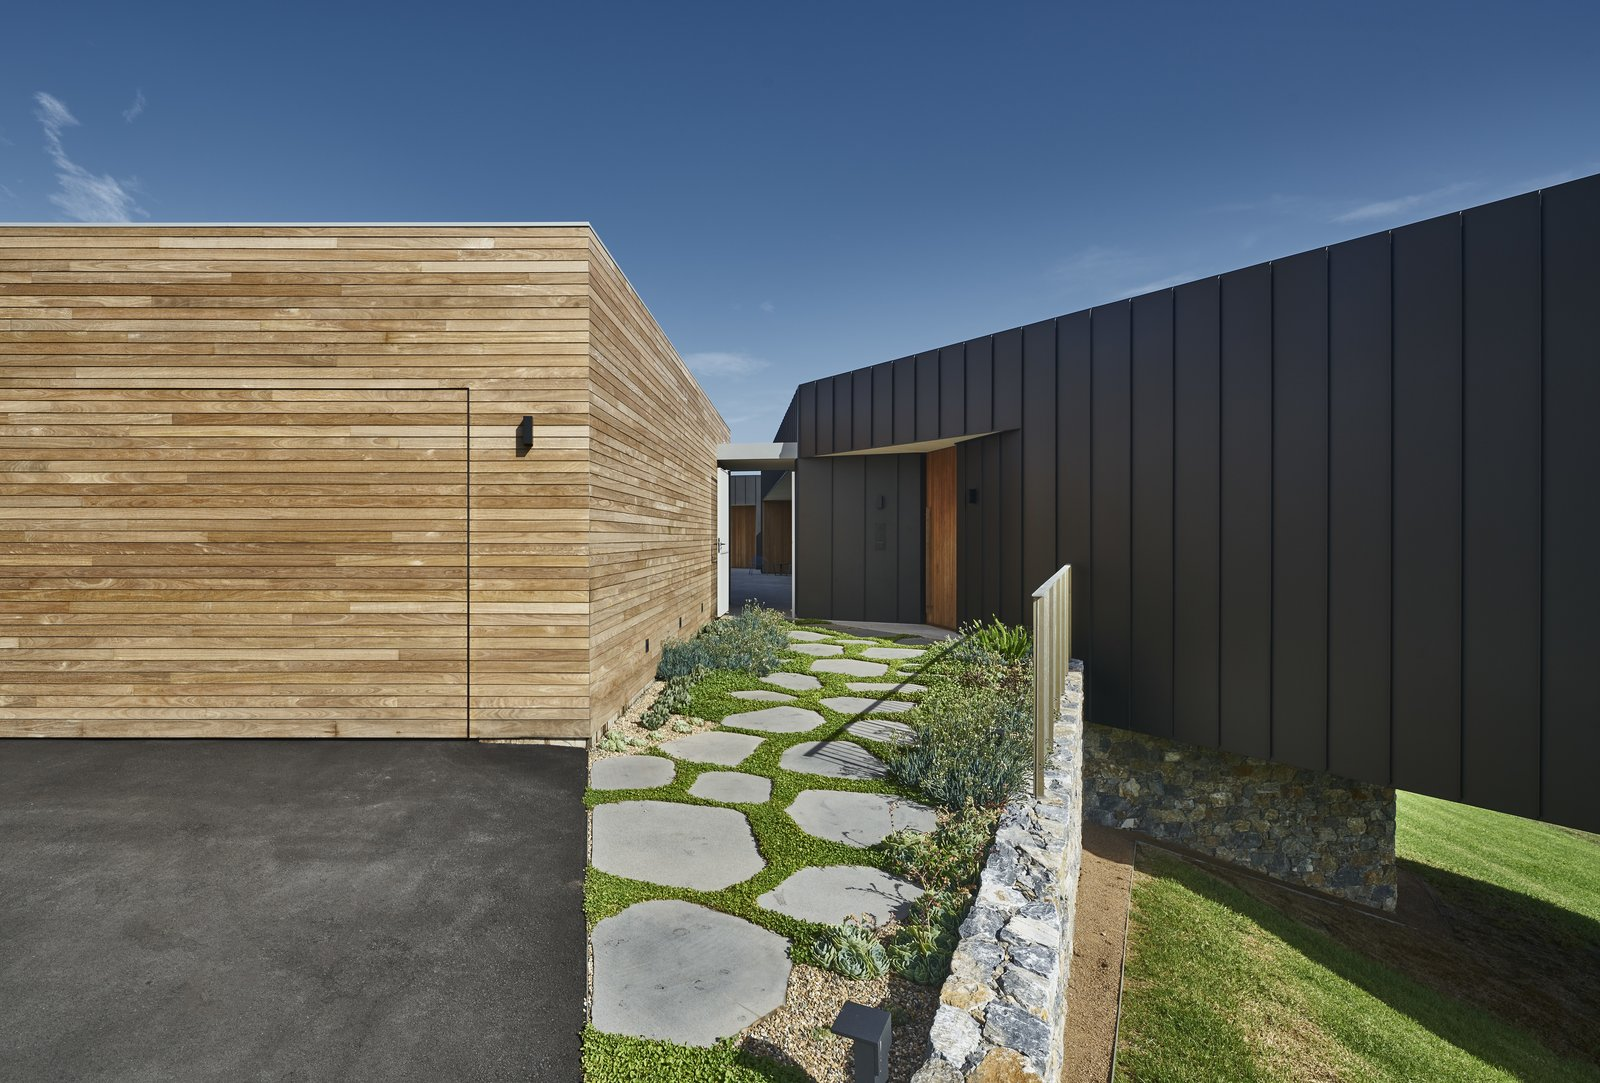 Garage and Detached Garage Room Type A wood-clad garage sits adjacent to the home.  Best Photos from An Australian Abode Fuses Structure With Scenery